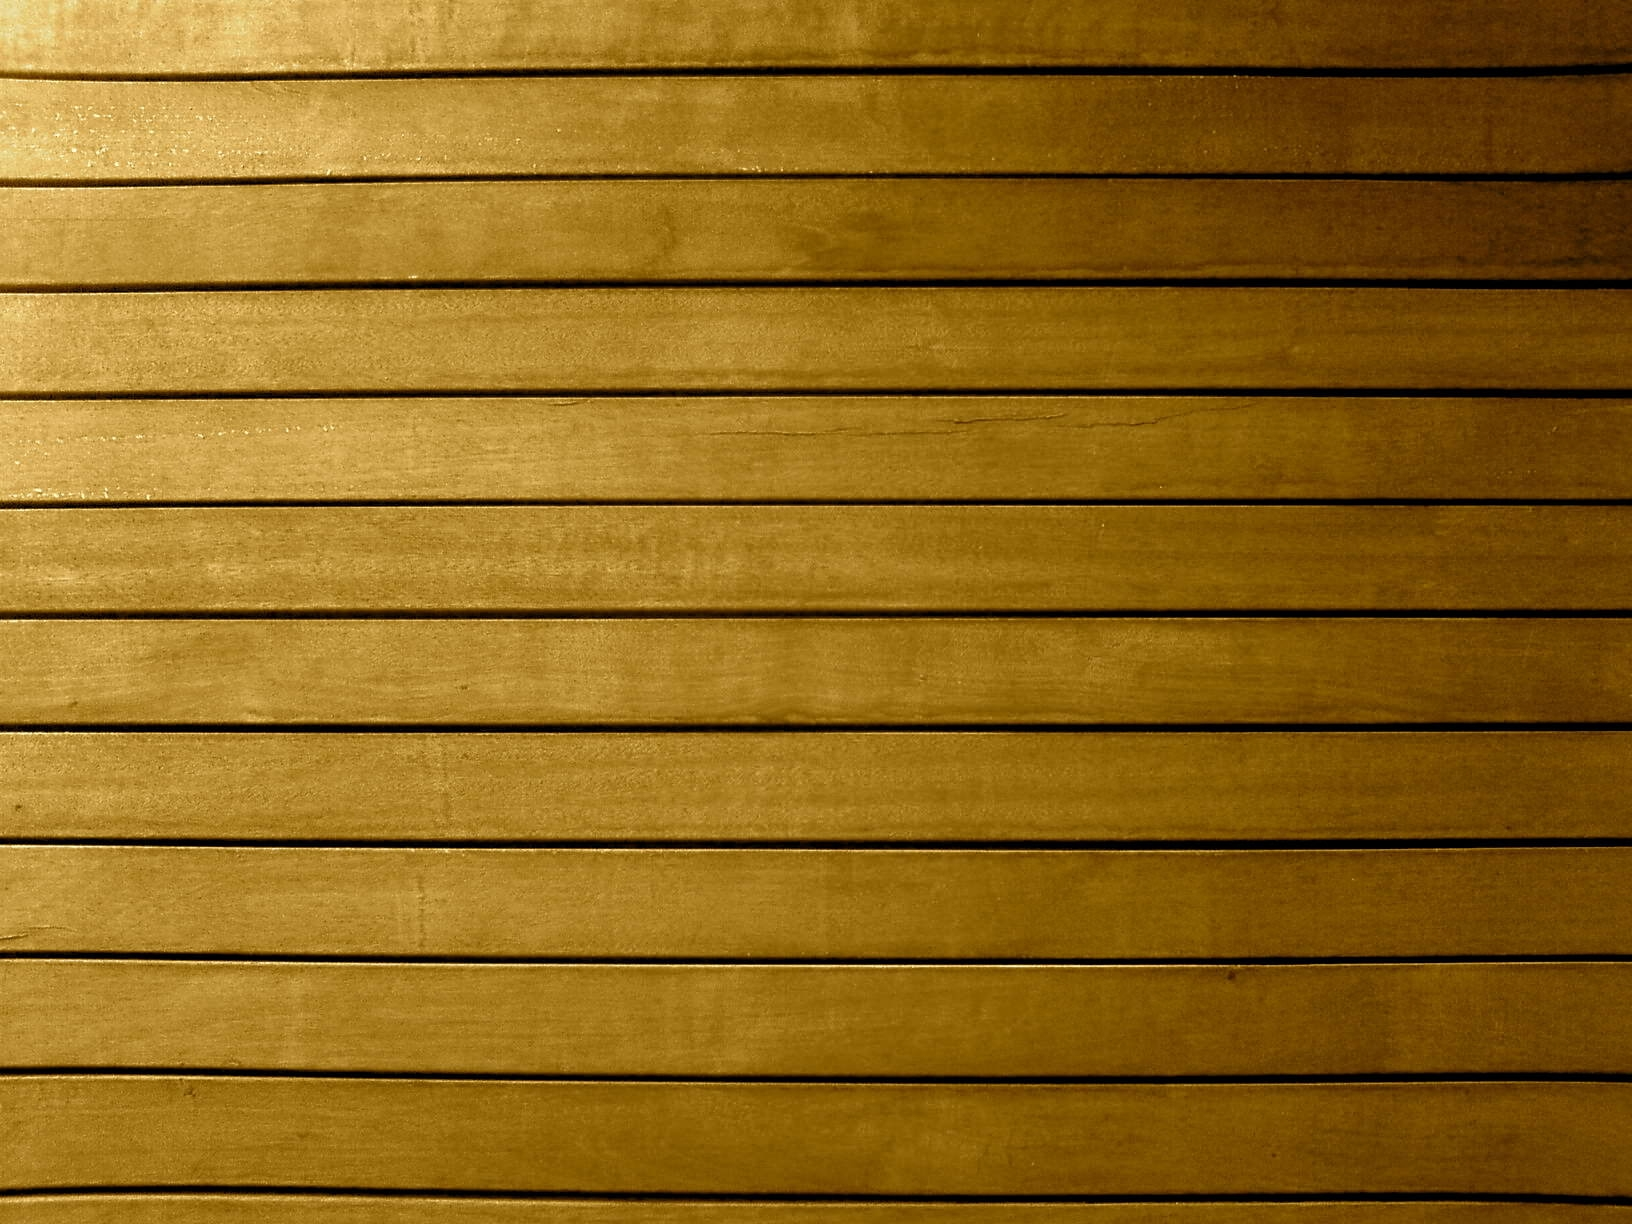 Woody Plank Background with Horizontal Lines